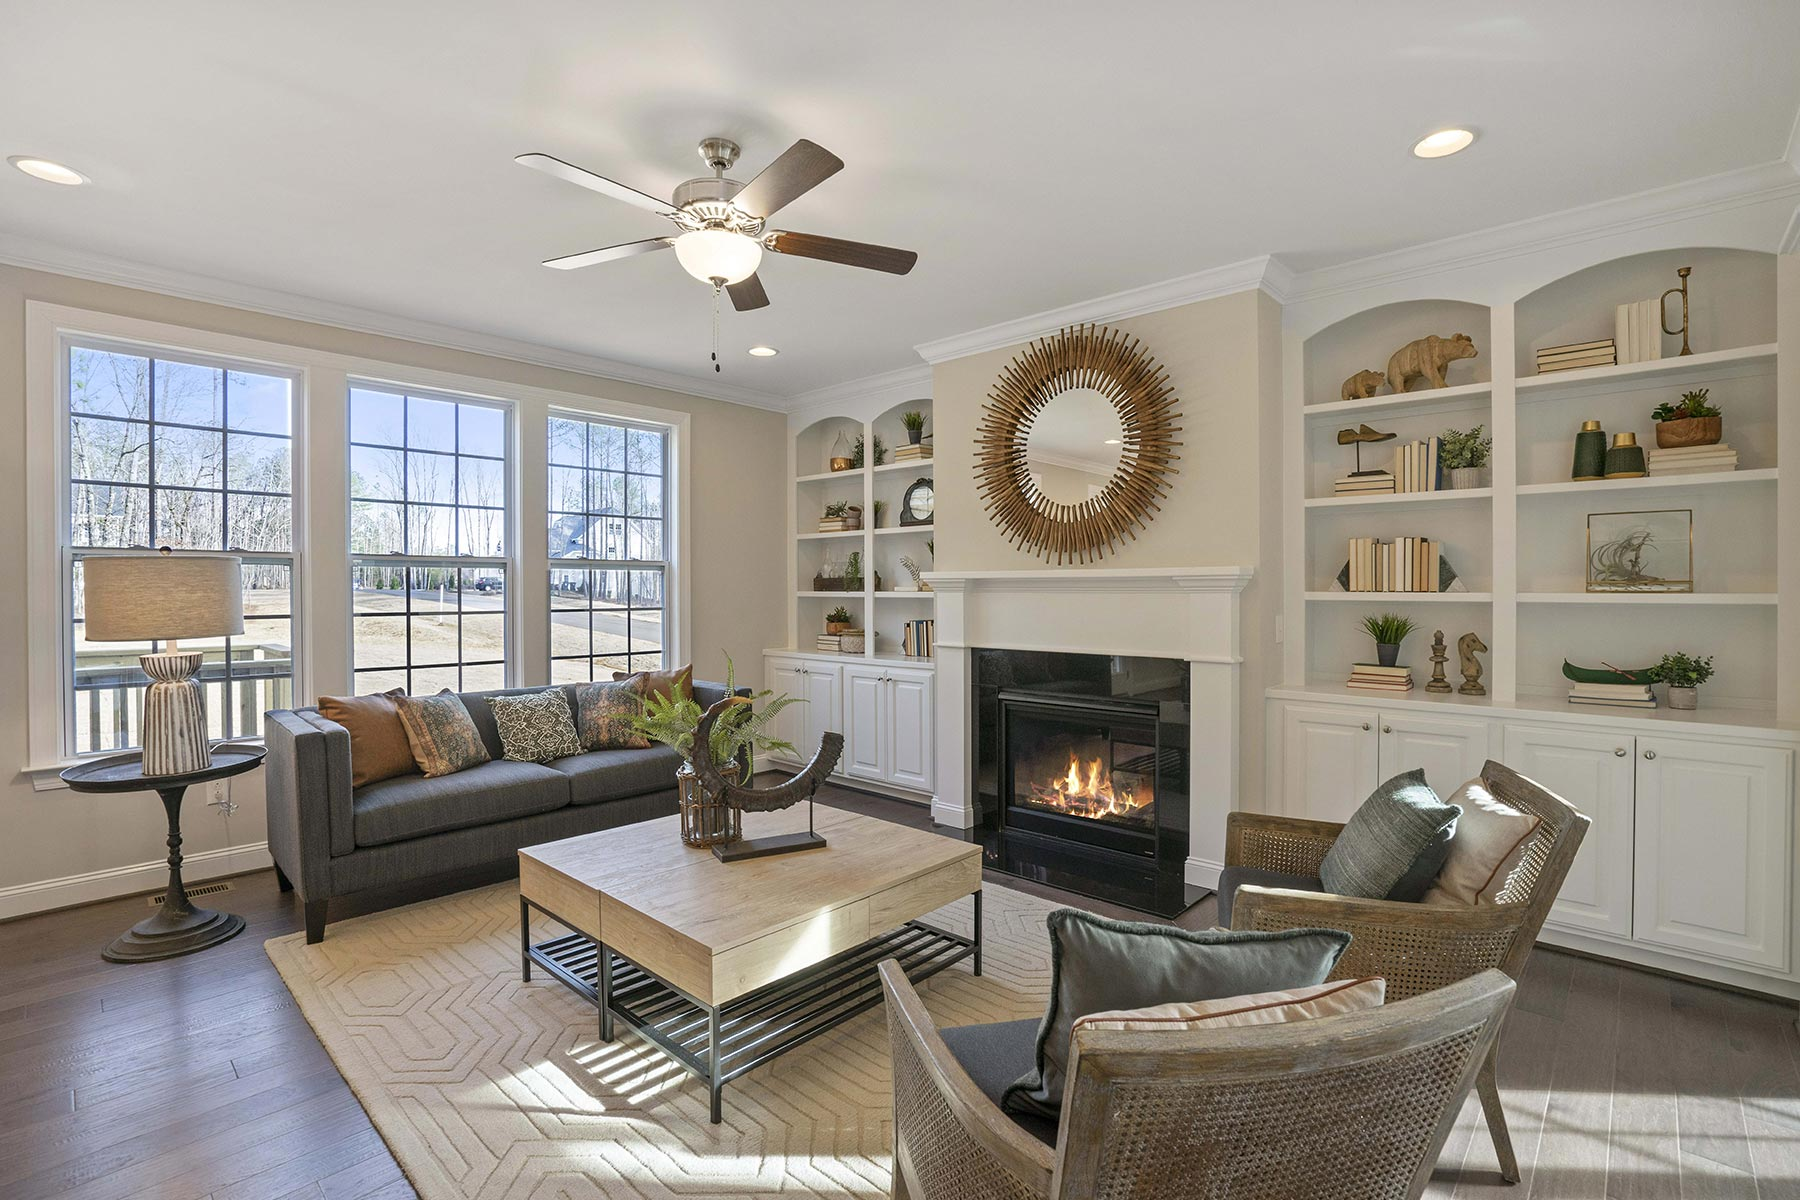 Juniper Plan Greatroom at Ballentine Place in Holly Springs North Carolina by Mattamy Homes